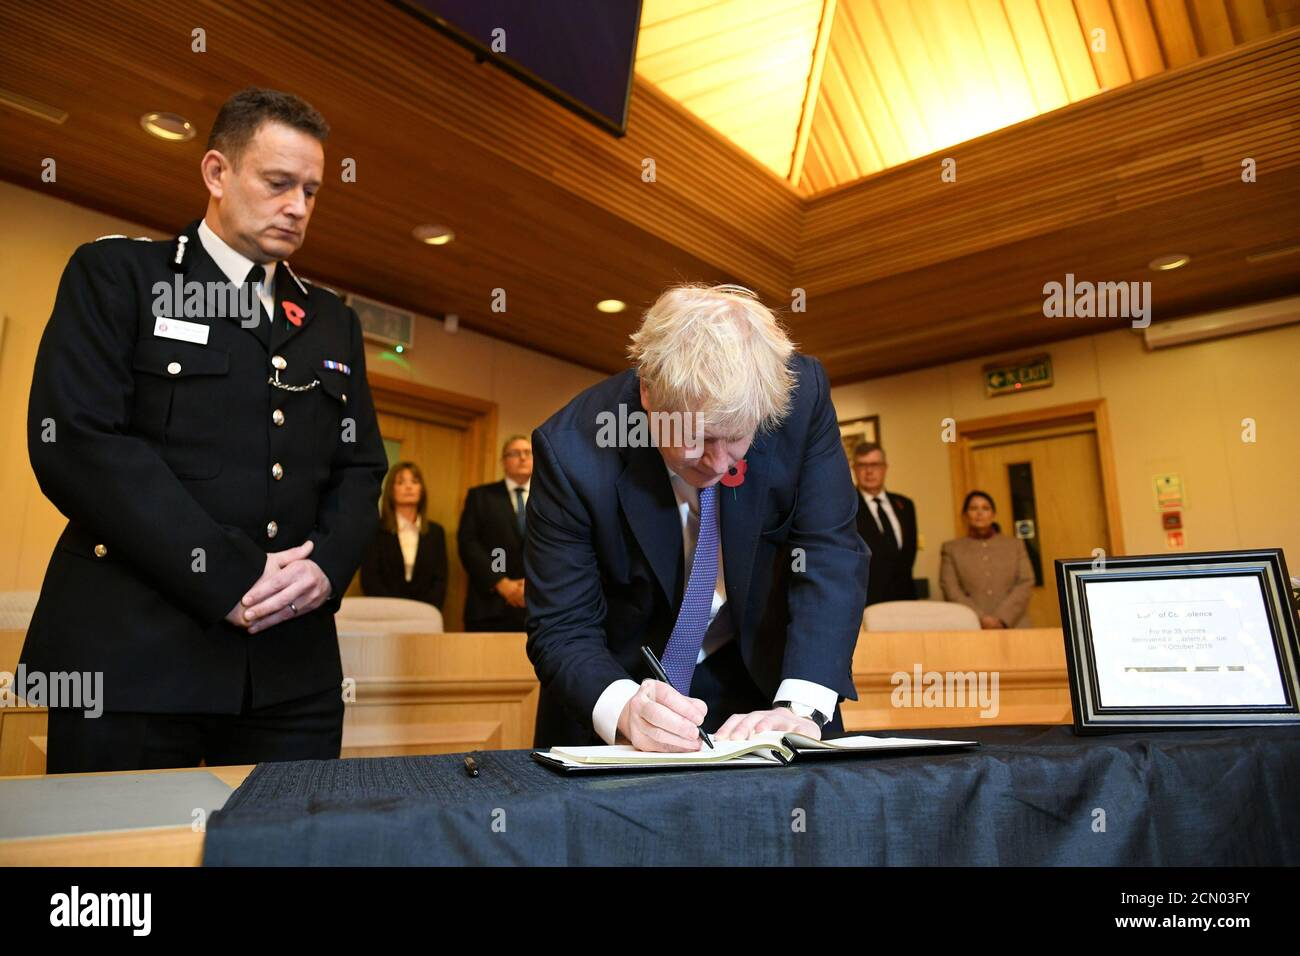 Britain's Prime Minister Boris Johnson signs a book of condolence during a visit to Thurrock Council Offices in Grays, Britain October 28, 2019. Stefan Rousseau/Pool via REUTERS Stock Photo